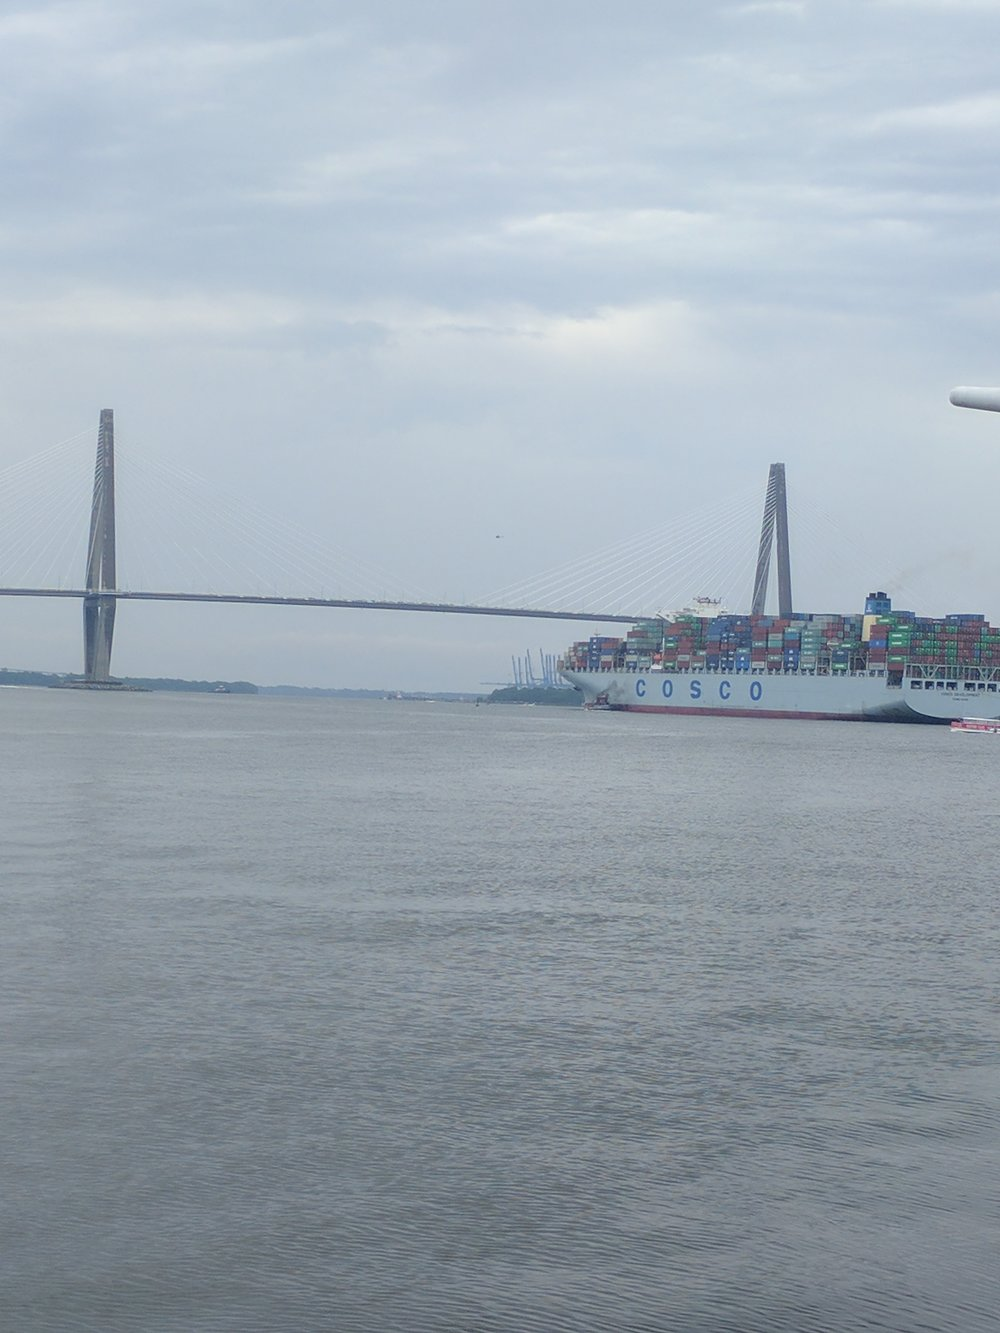 DevelopmentApproachingRavenelBridge8.jpg